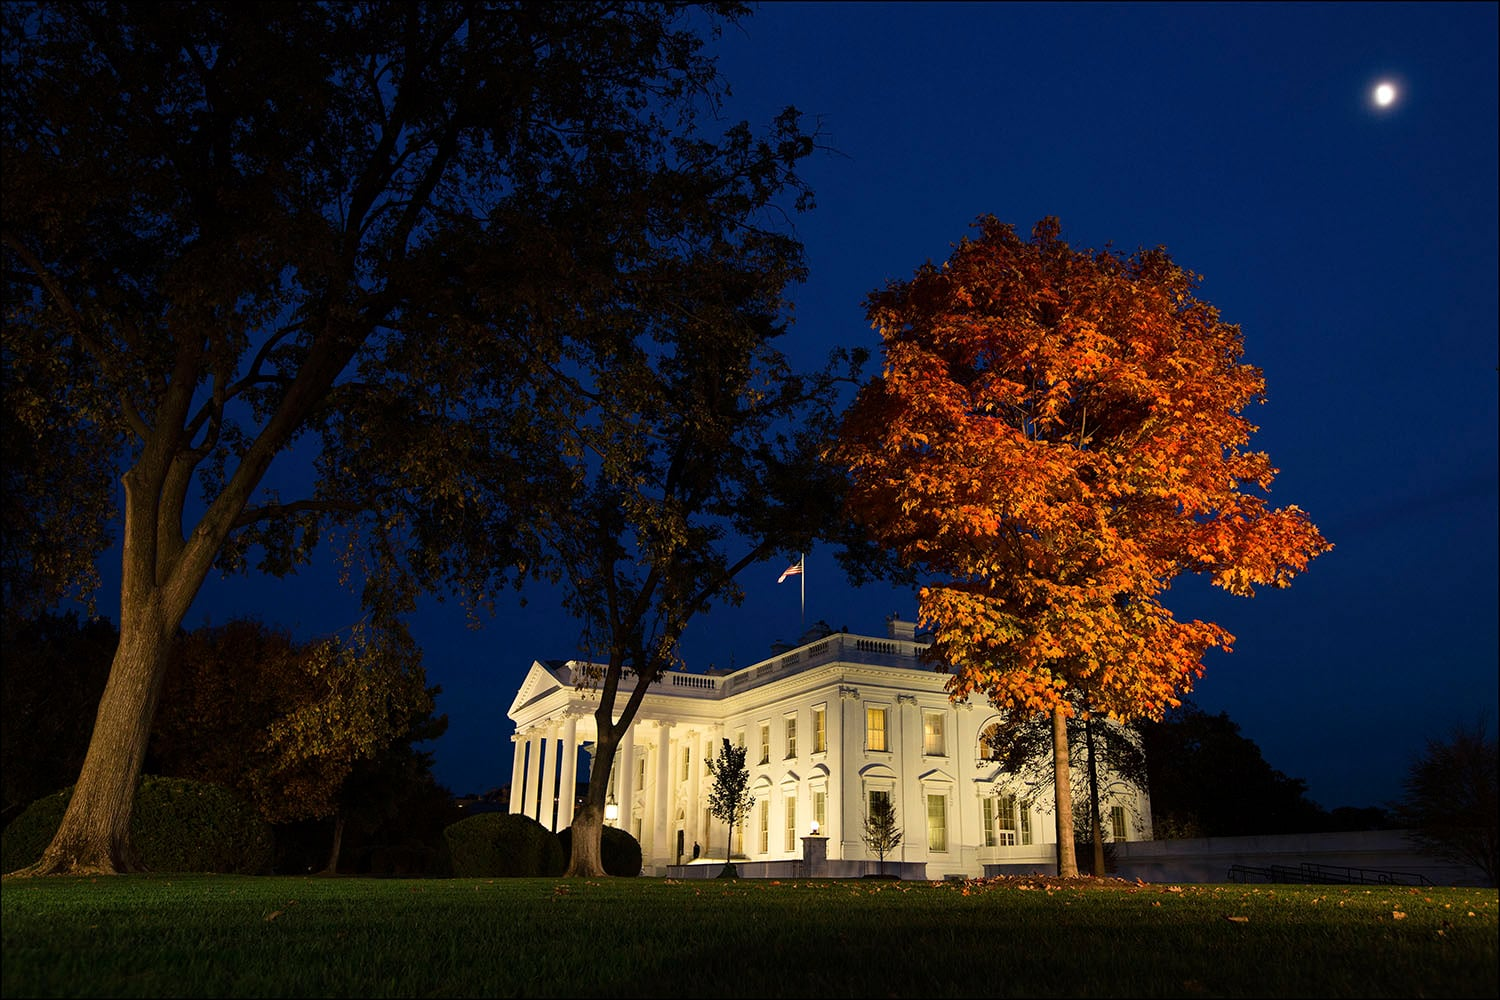 Fall foliage illuminated by television lighting on the North Lawn of the White House, Nov. 8, 2016. (Official White House Photo by Chuck Kennedy).